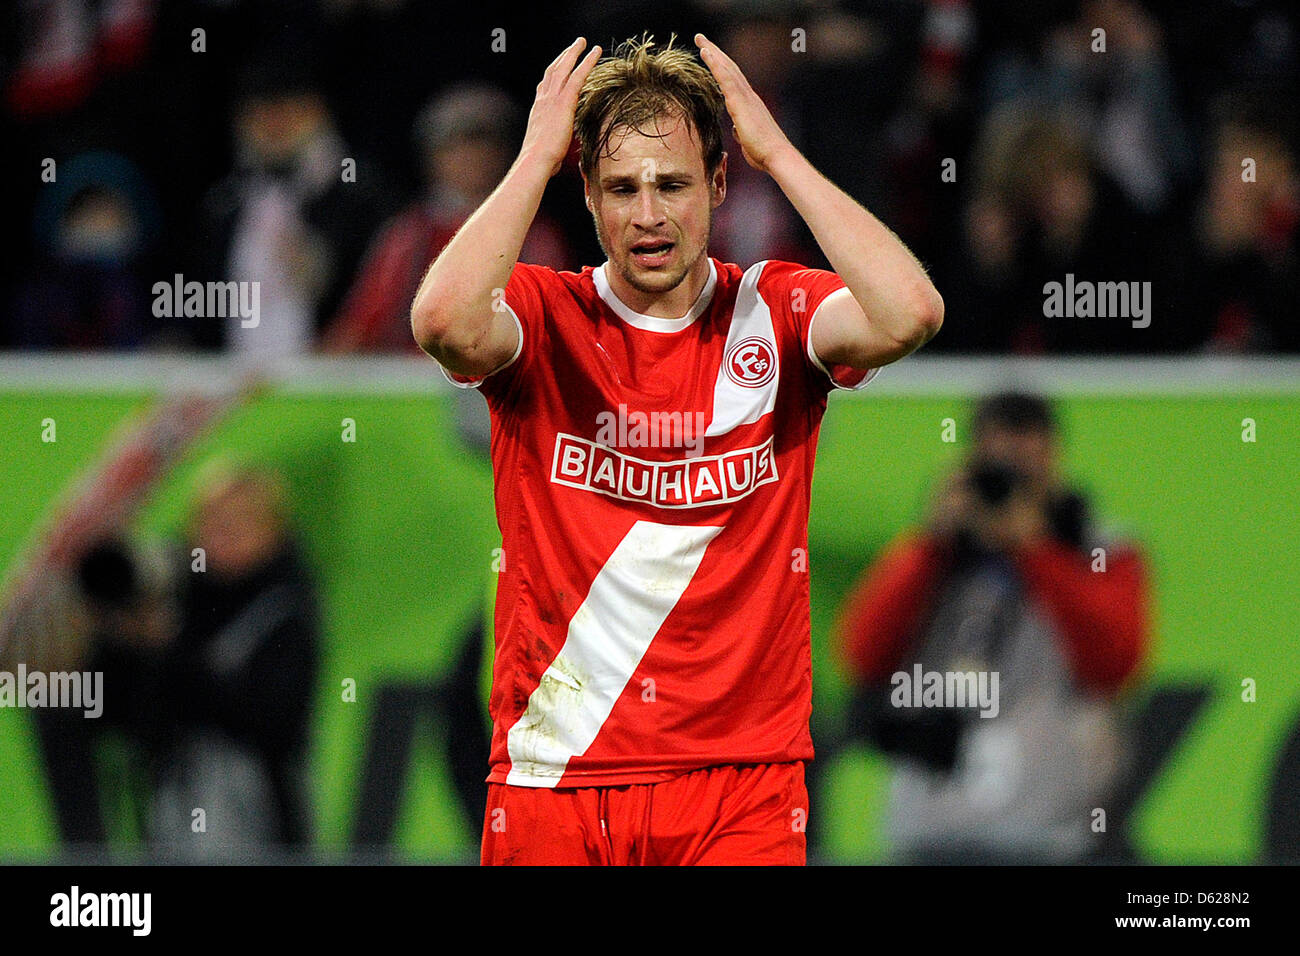 Duesseldorf's Maximilian Beister reacts after a missed goal opportunity during the second leg of the Bundesliga - Stock Image